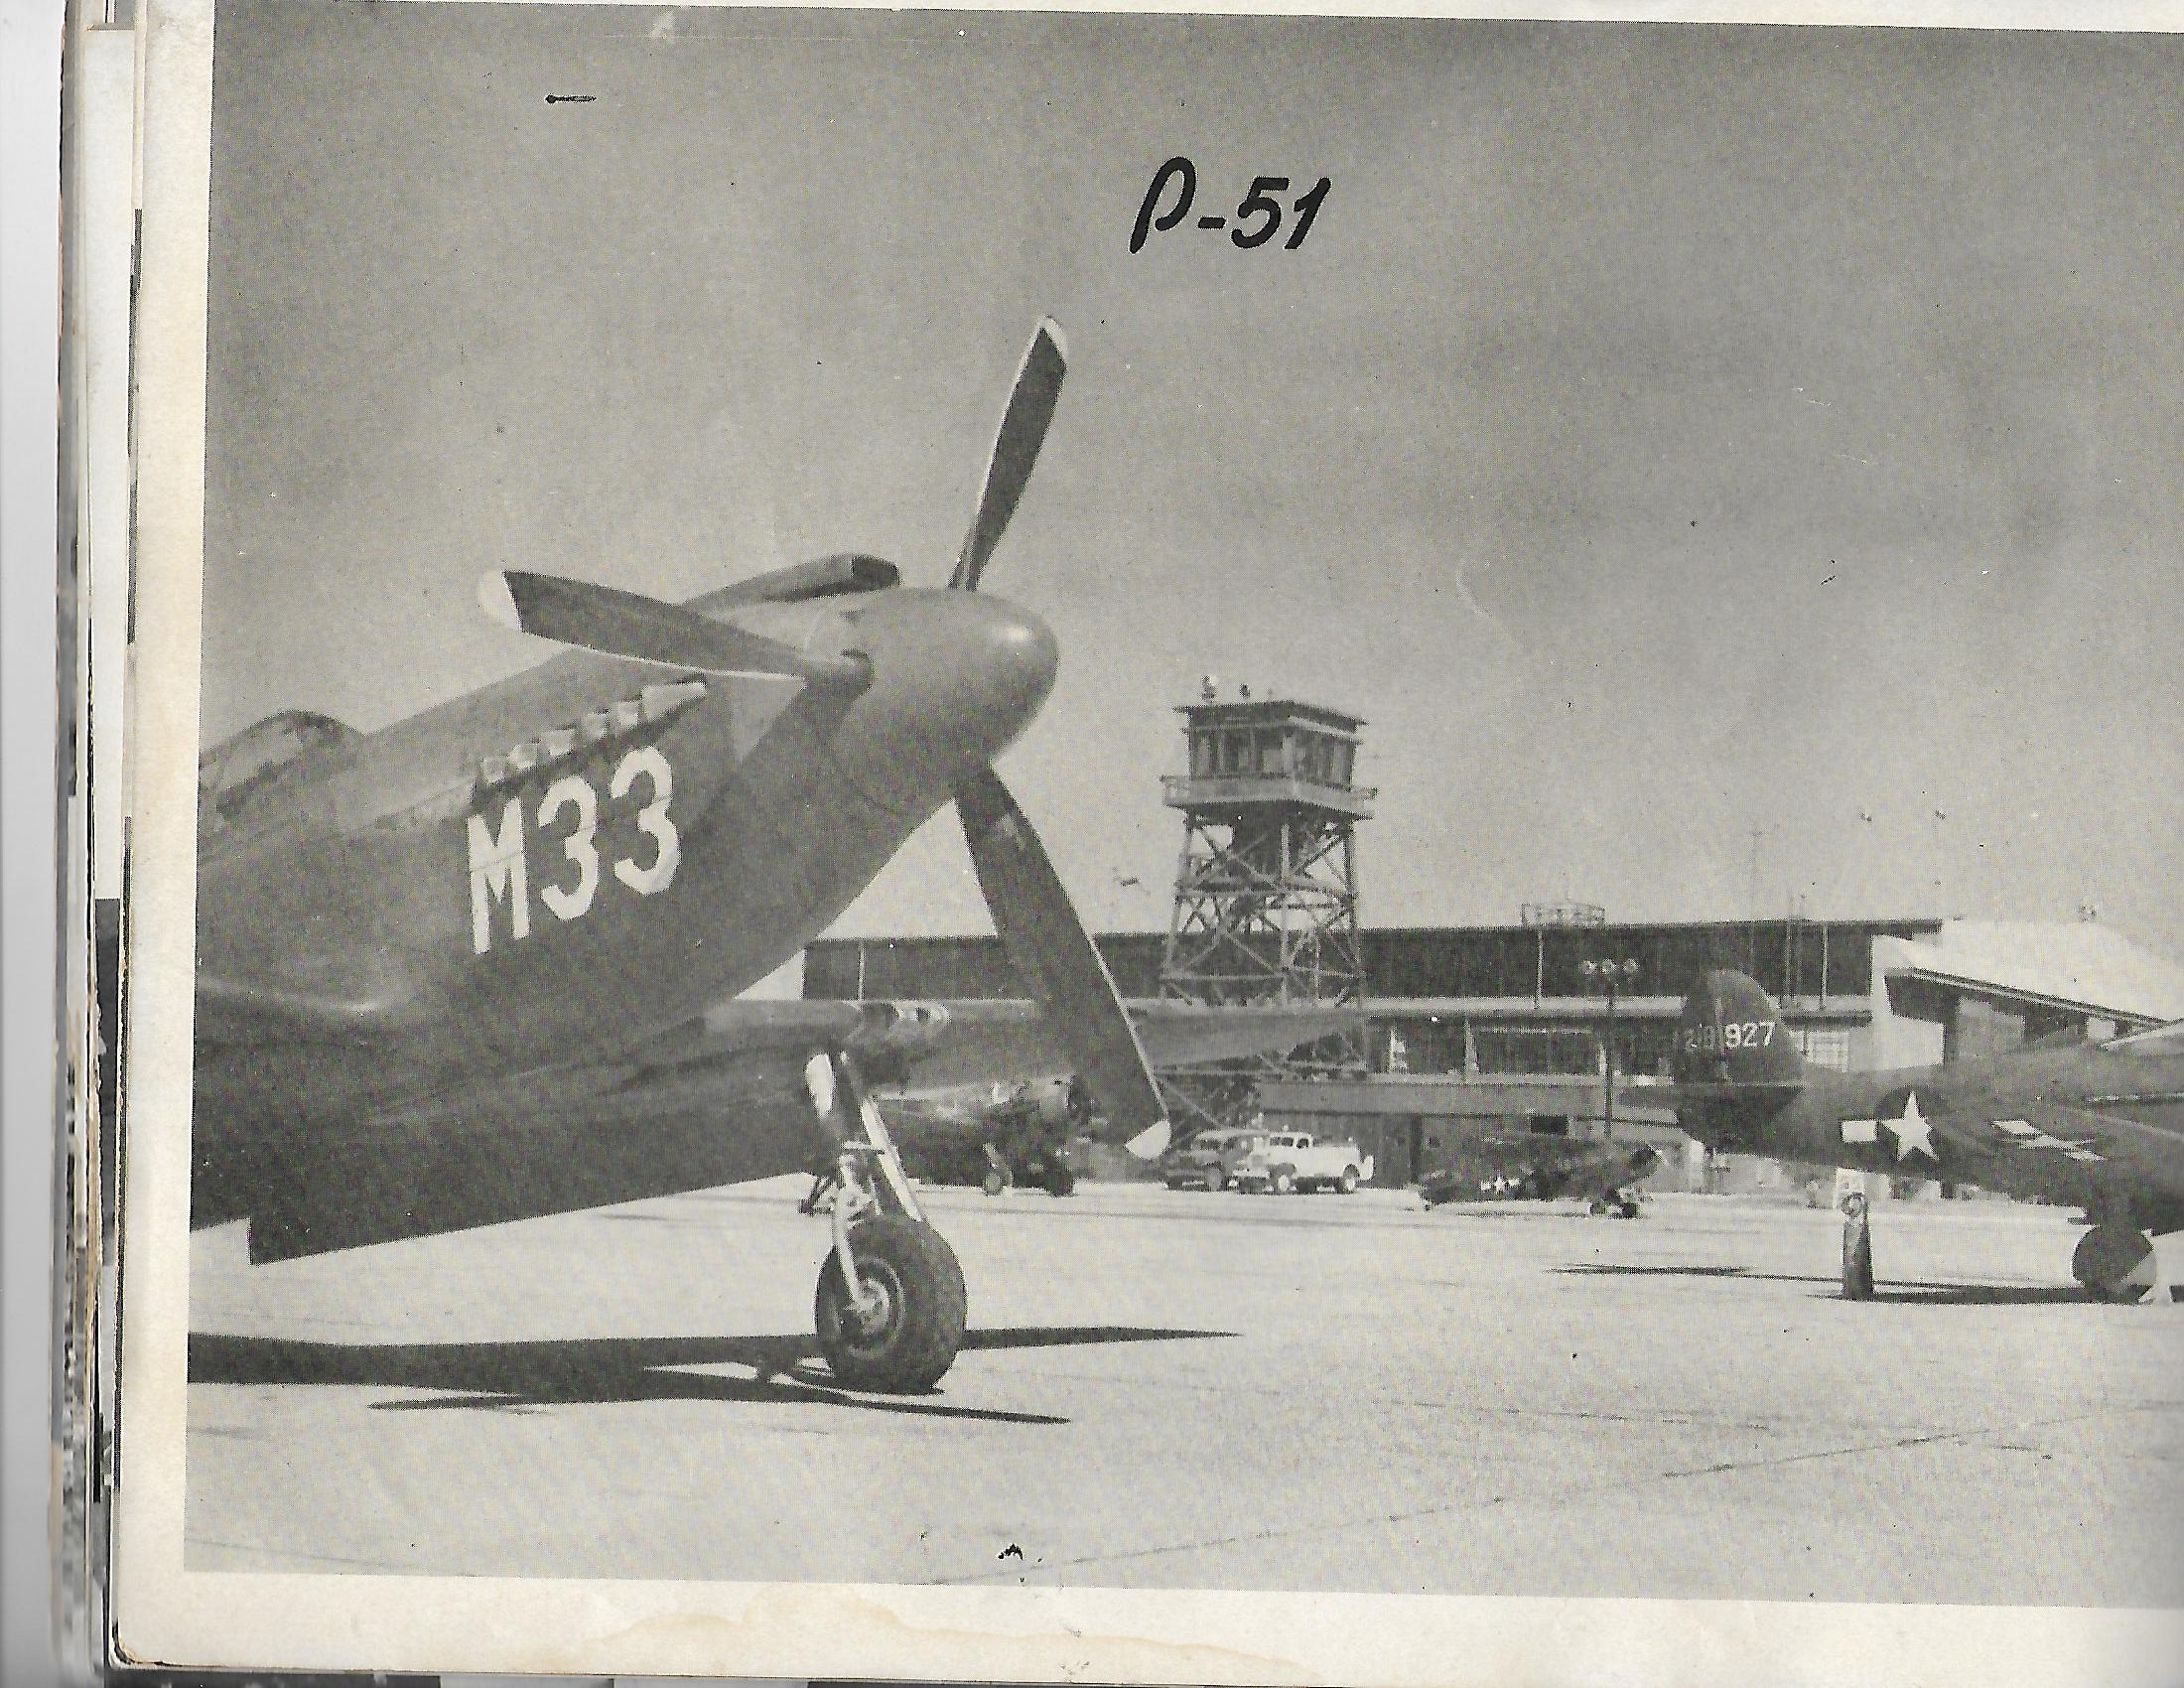 From the DeRidder Army Air Base vintage publication